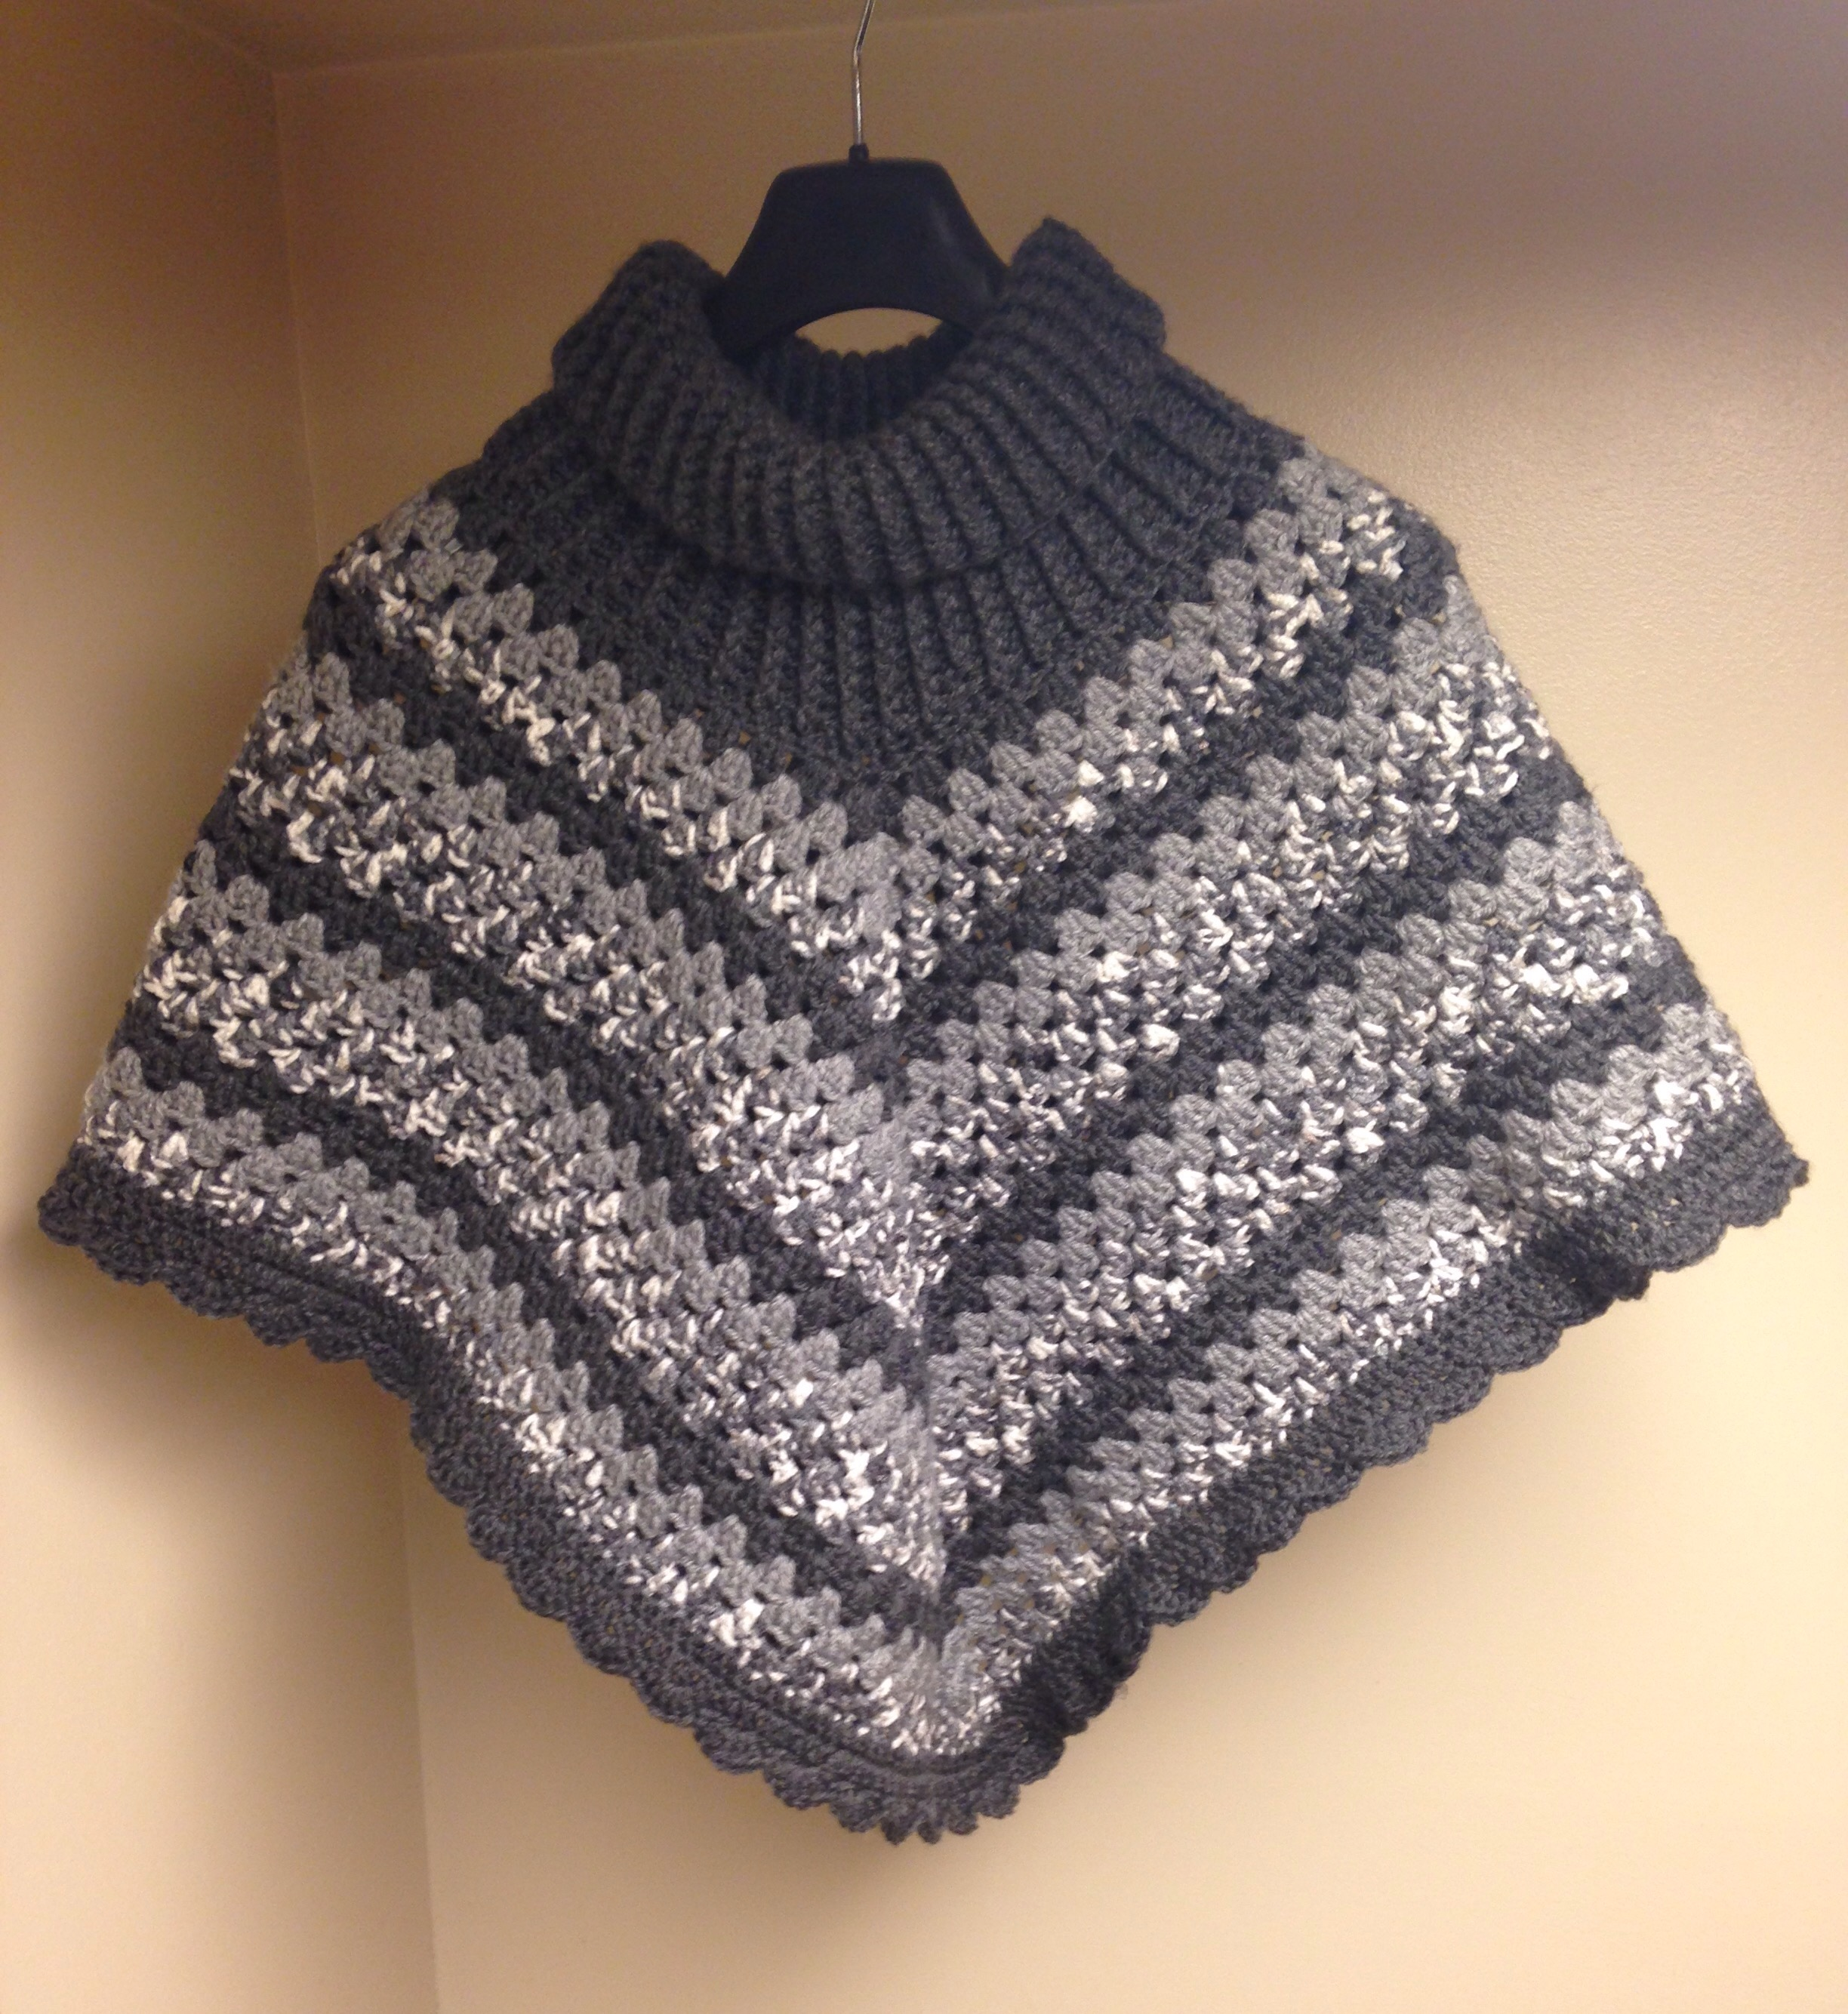 Knitting Pattern For Poncho With Cowl Neck : Cowl neck poncho Hey Can You Crochet Me A...Blog